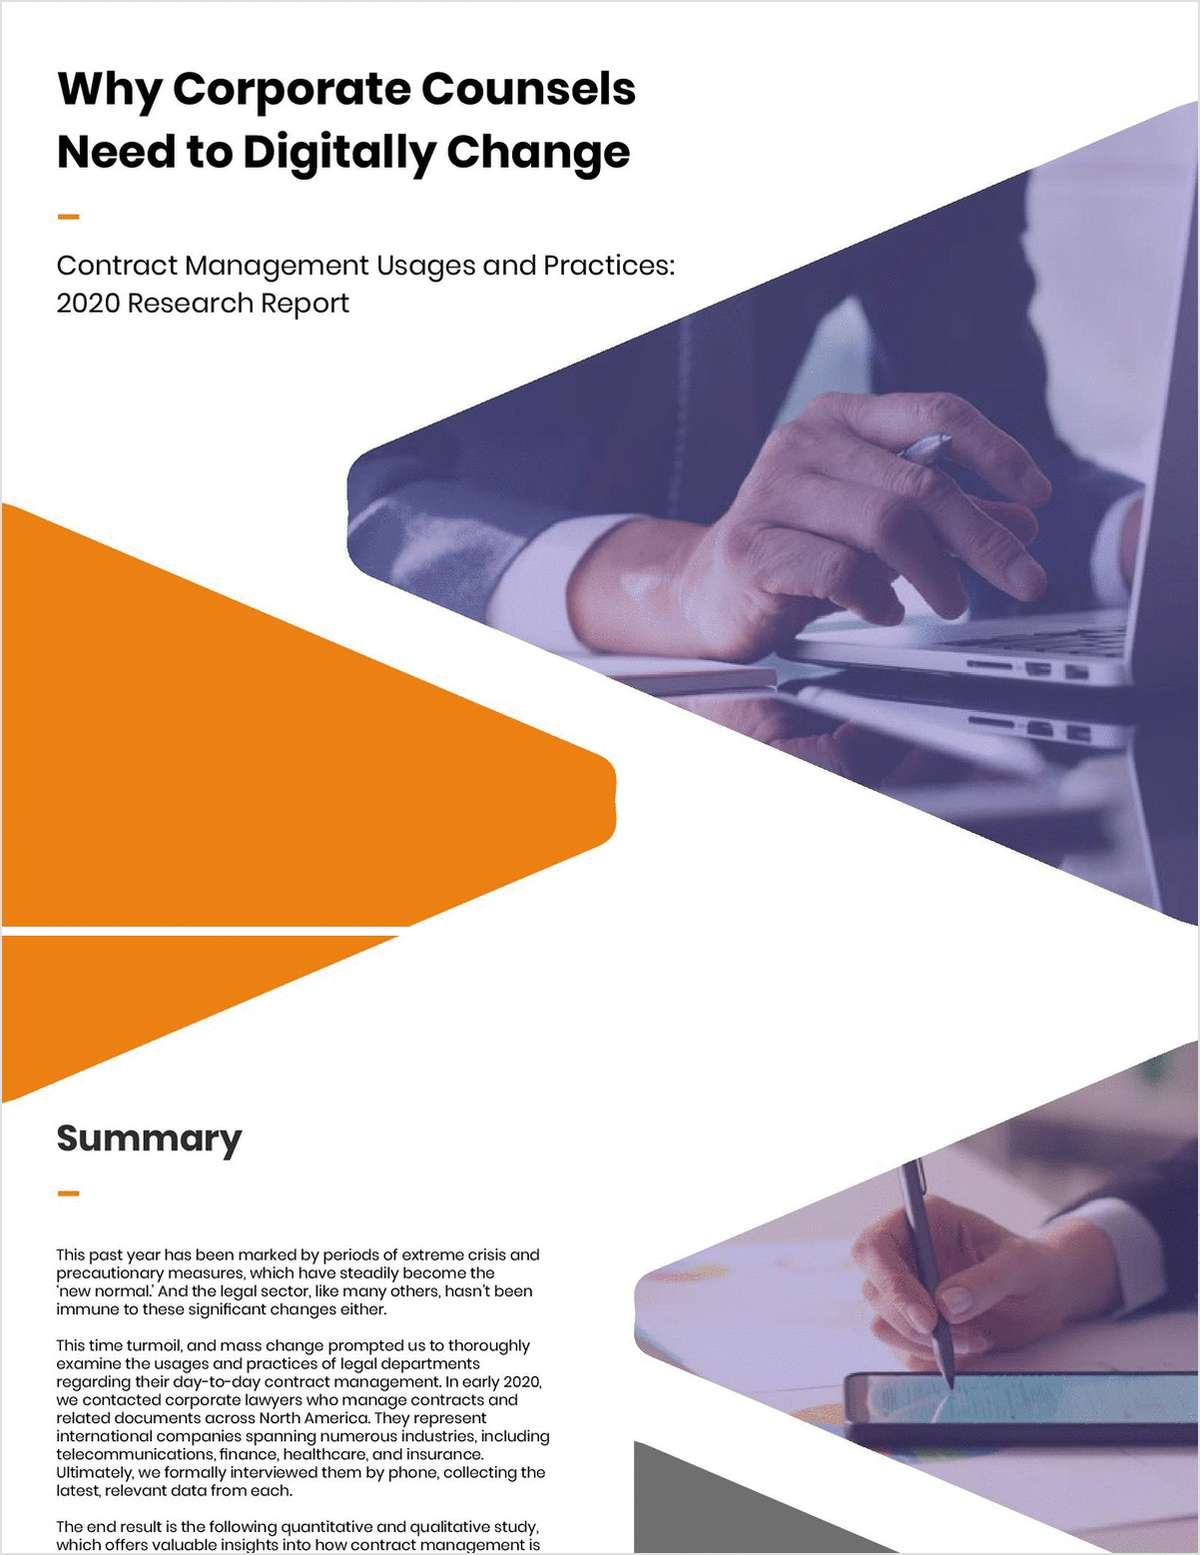 Contract Management Usages and Practices: 2020 Research Report